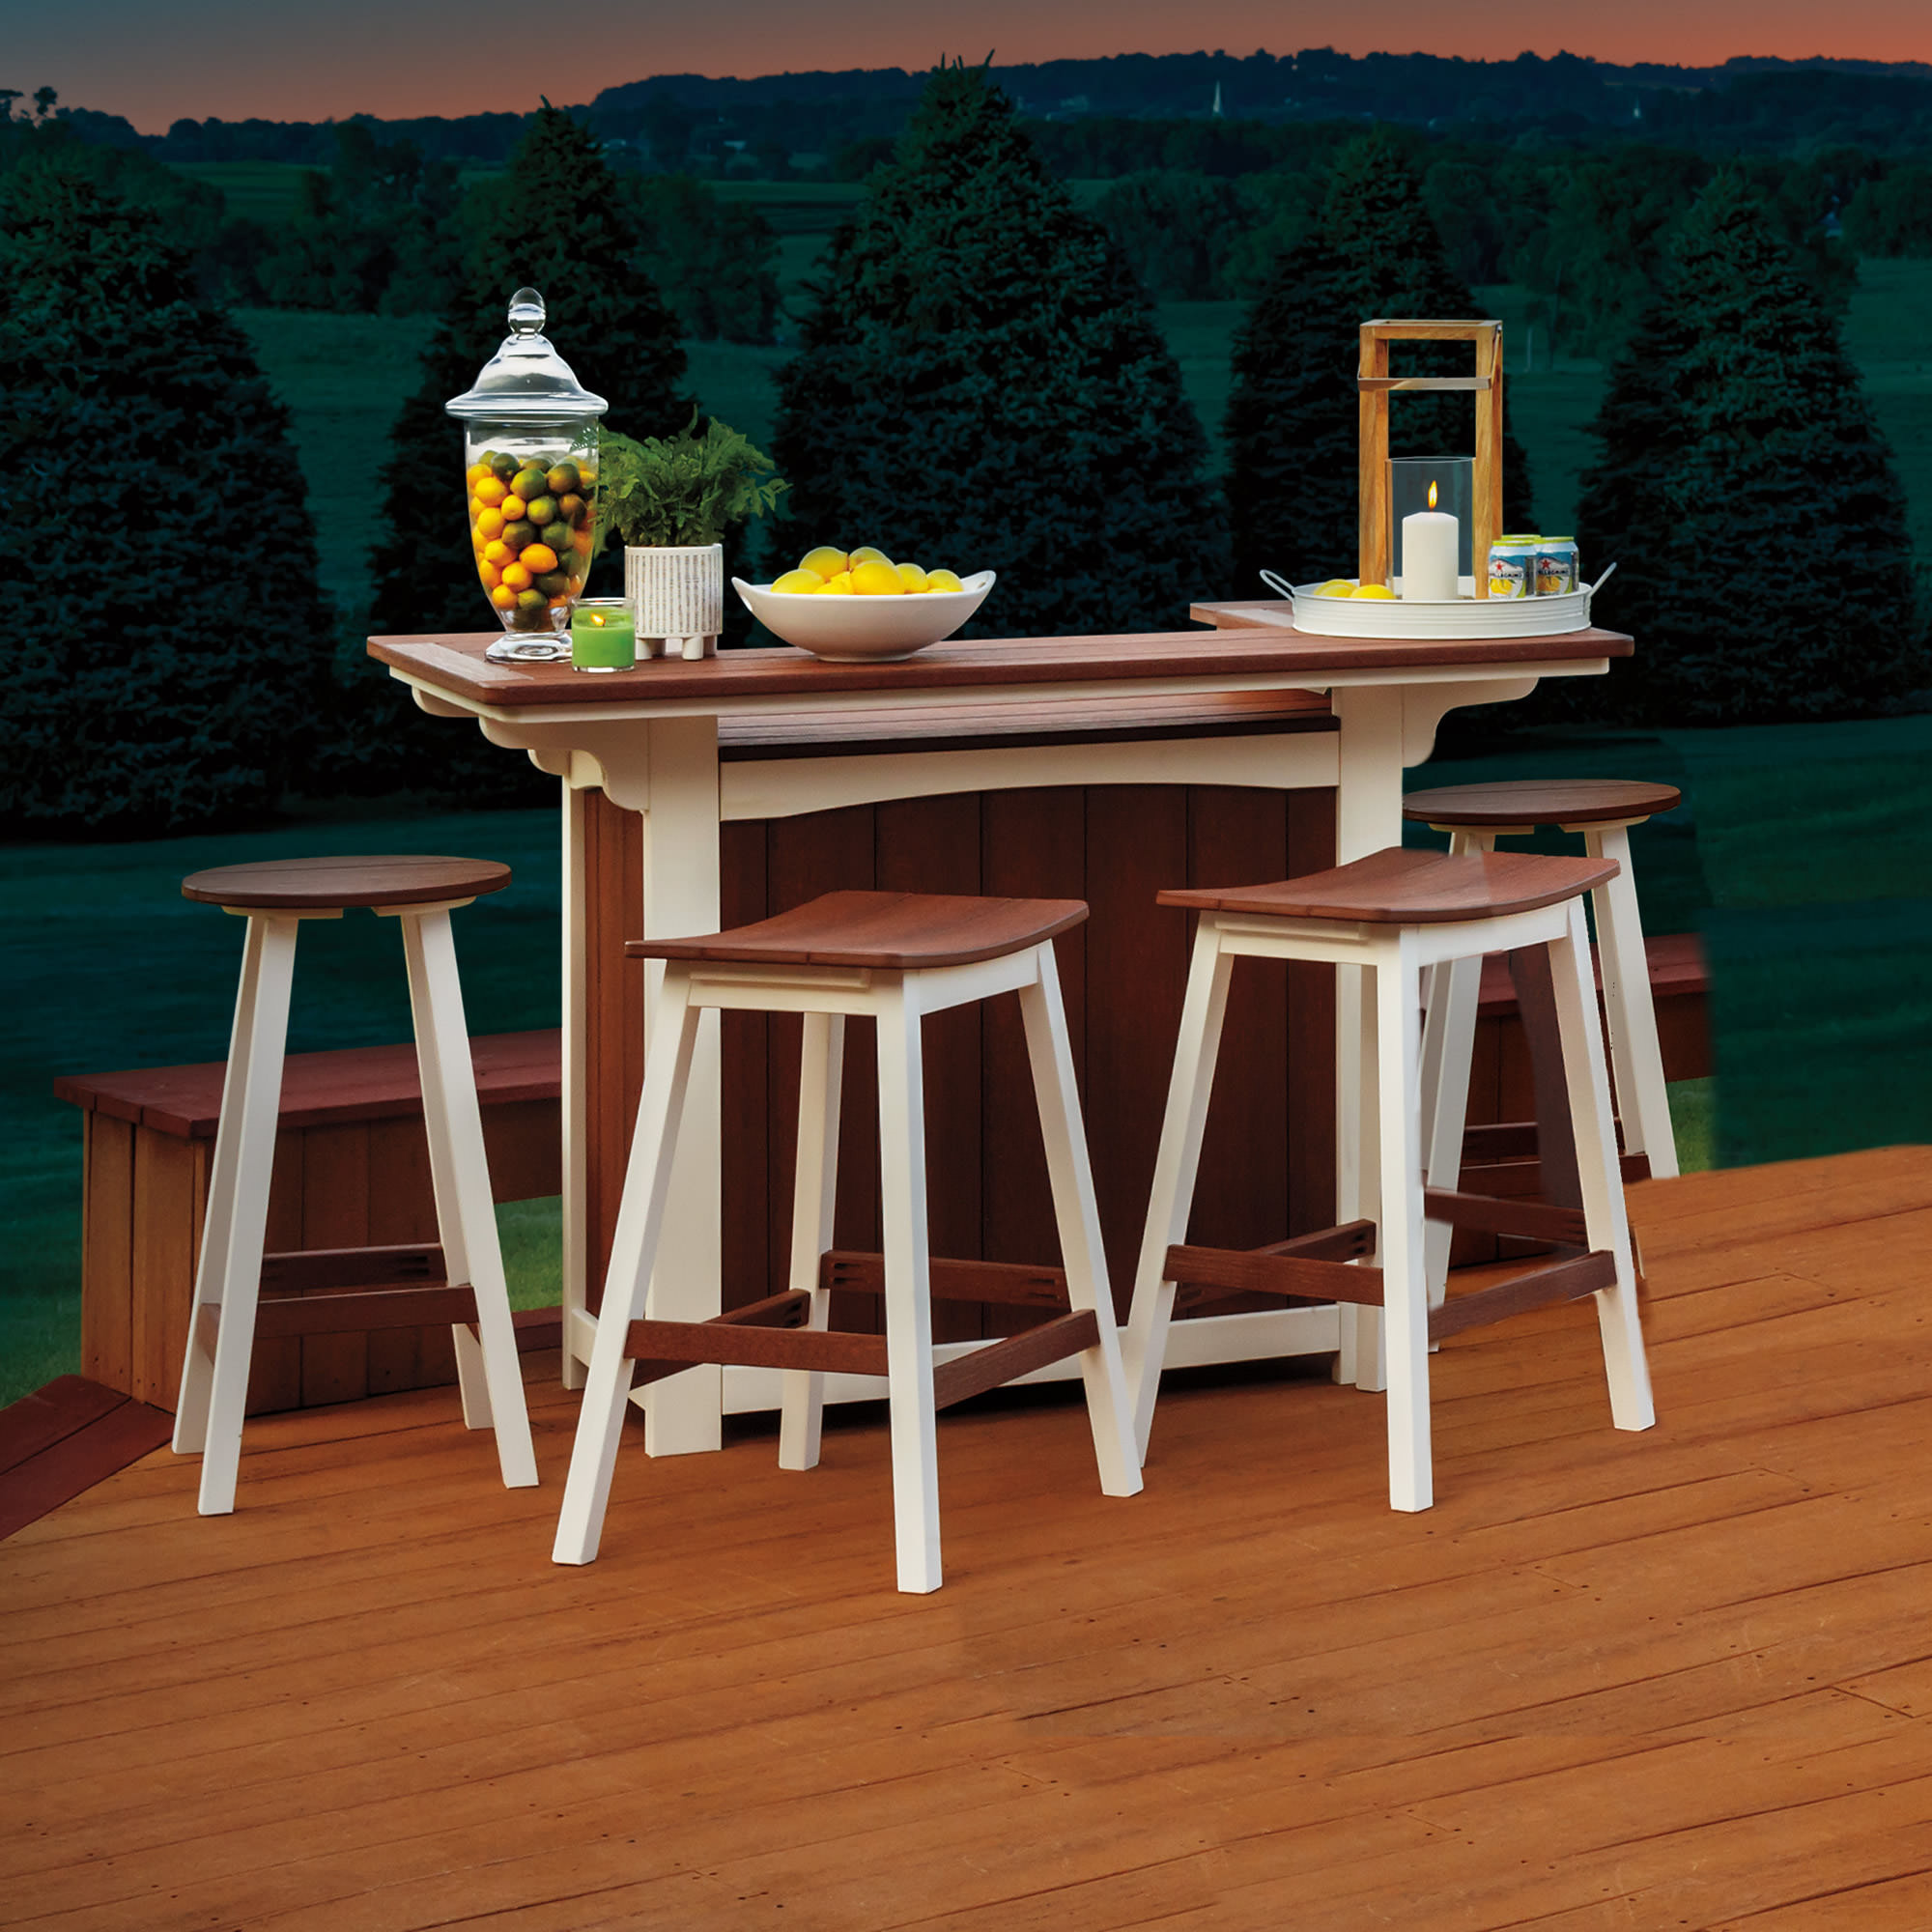 Casual Comfort Poly Lumber 5pc Bar-Saddle Stool Set